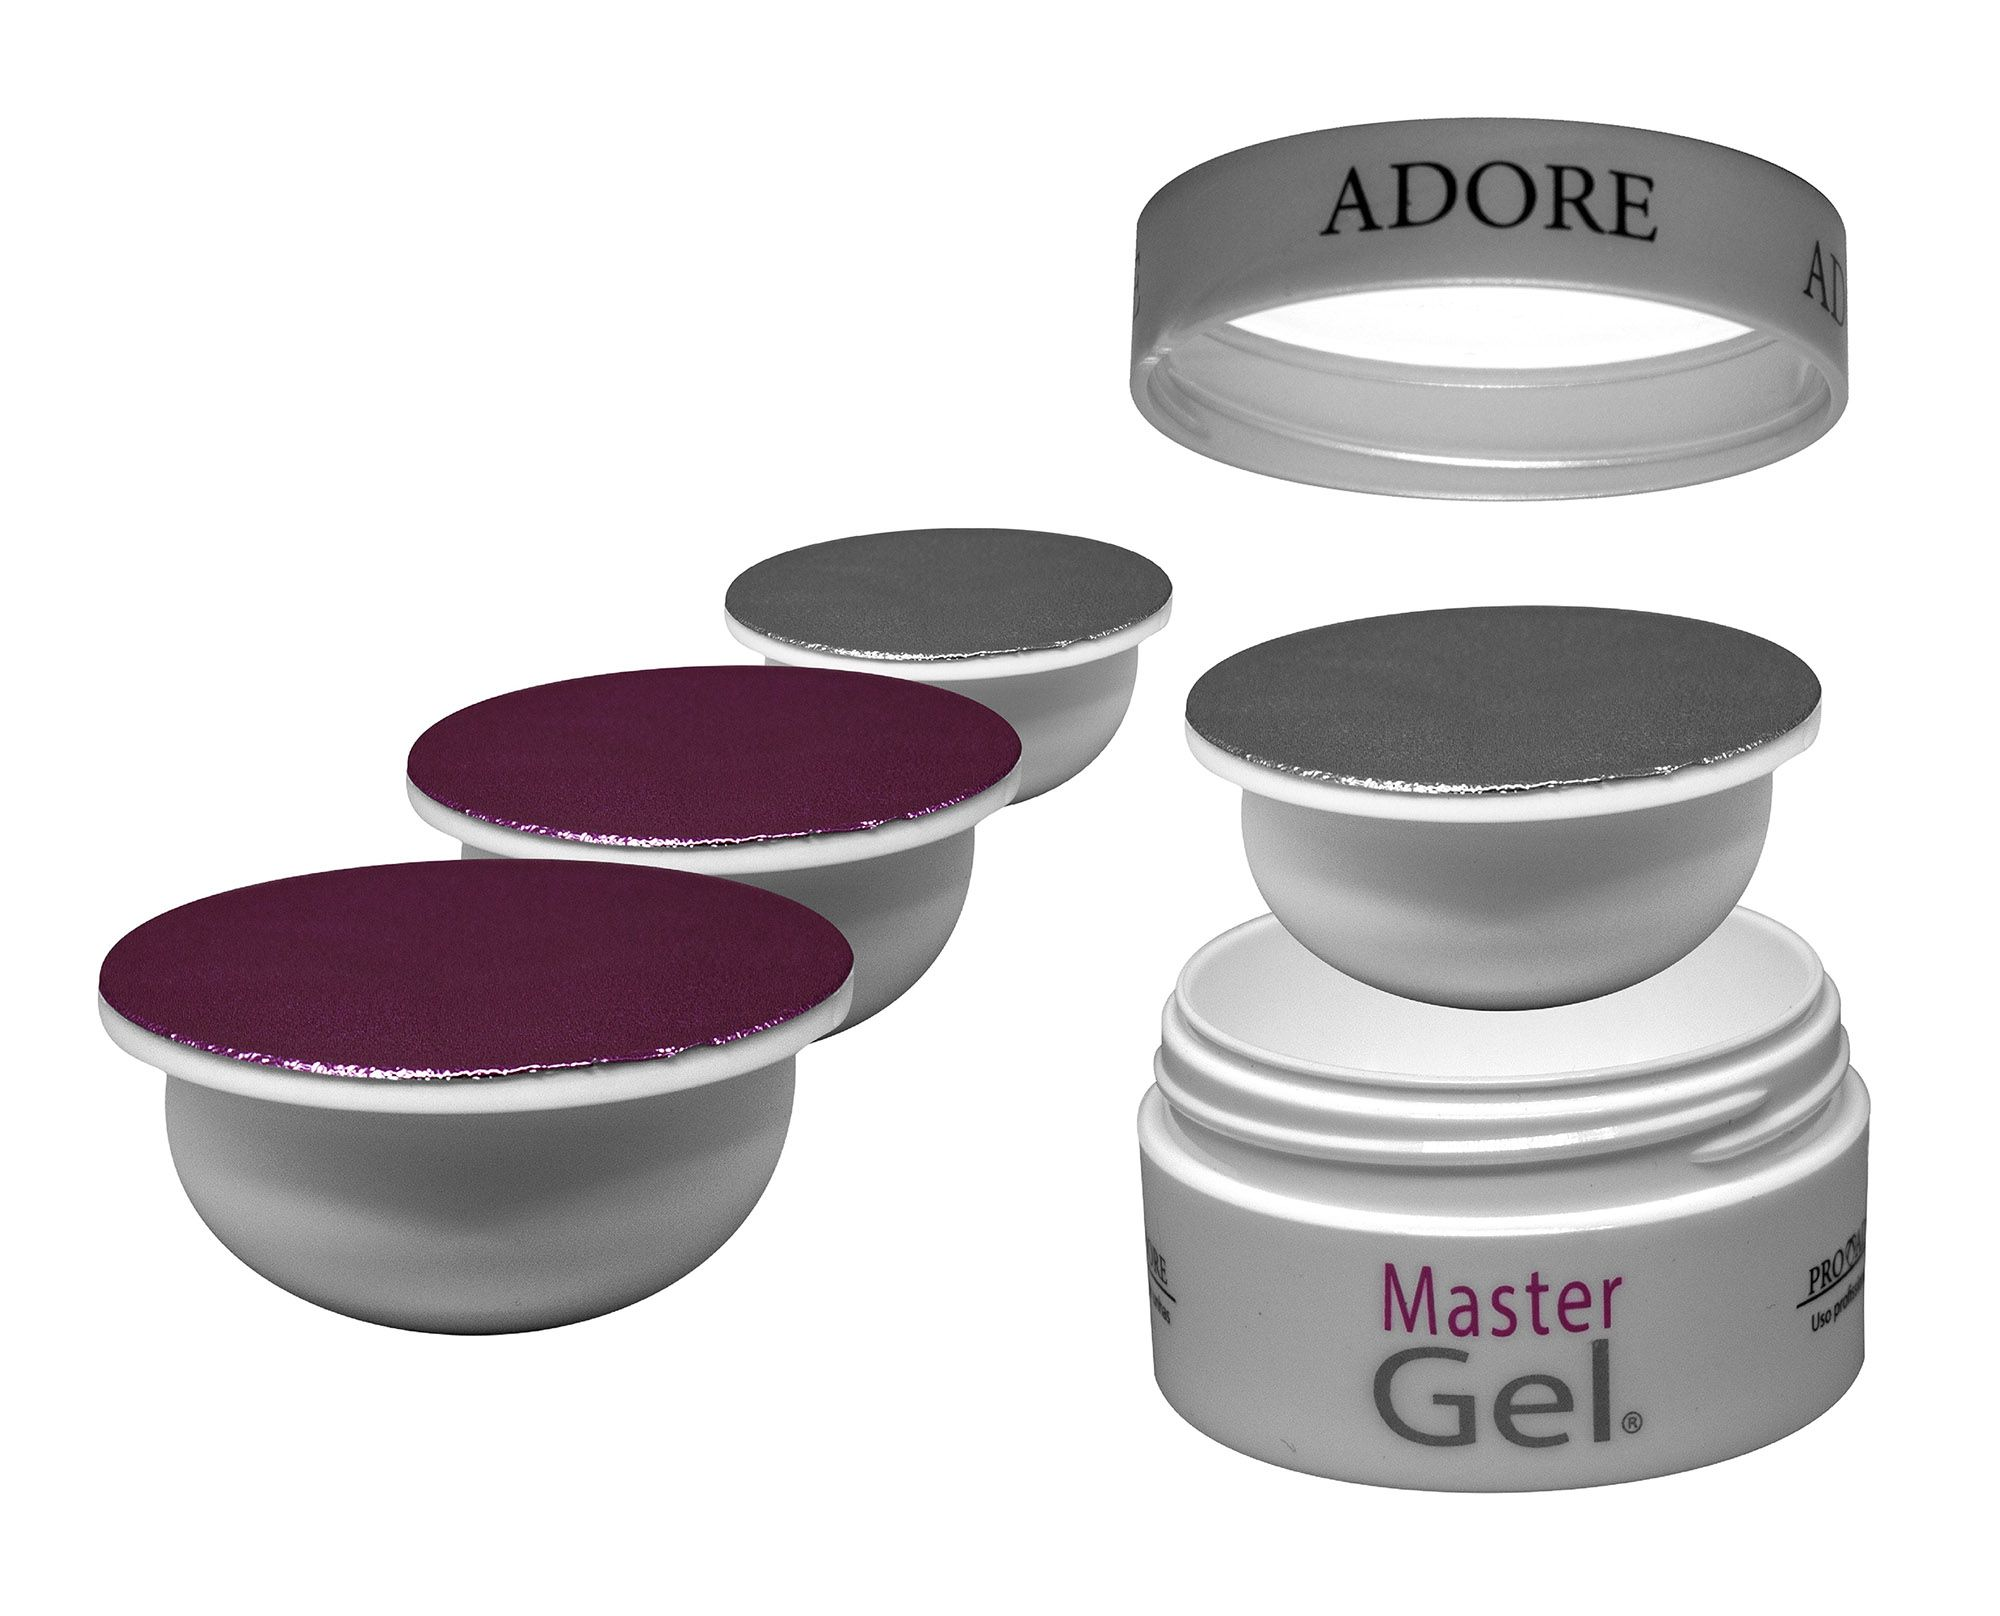 Kit Refil - 2 Adore Master Gel Pink + 2 Adore Master Gel Clear